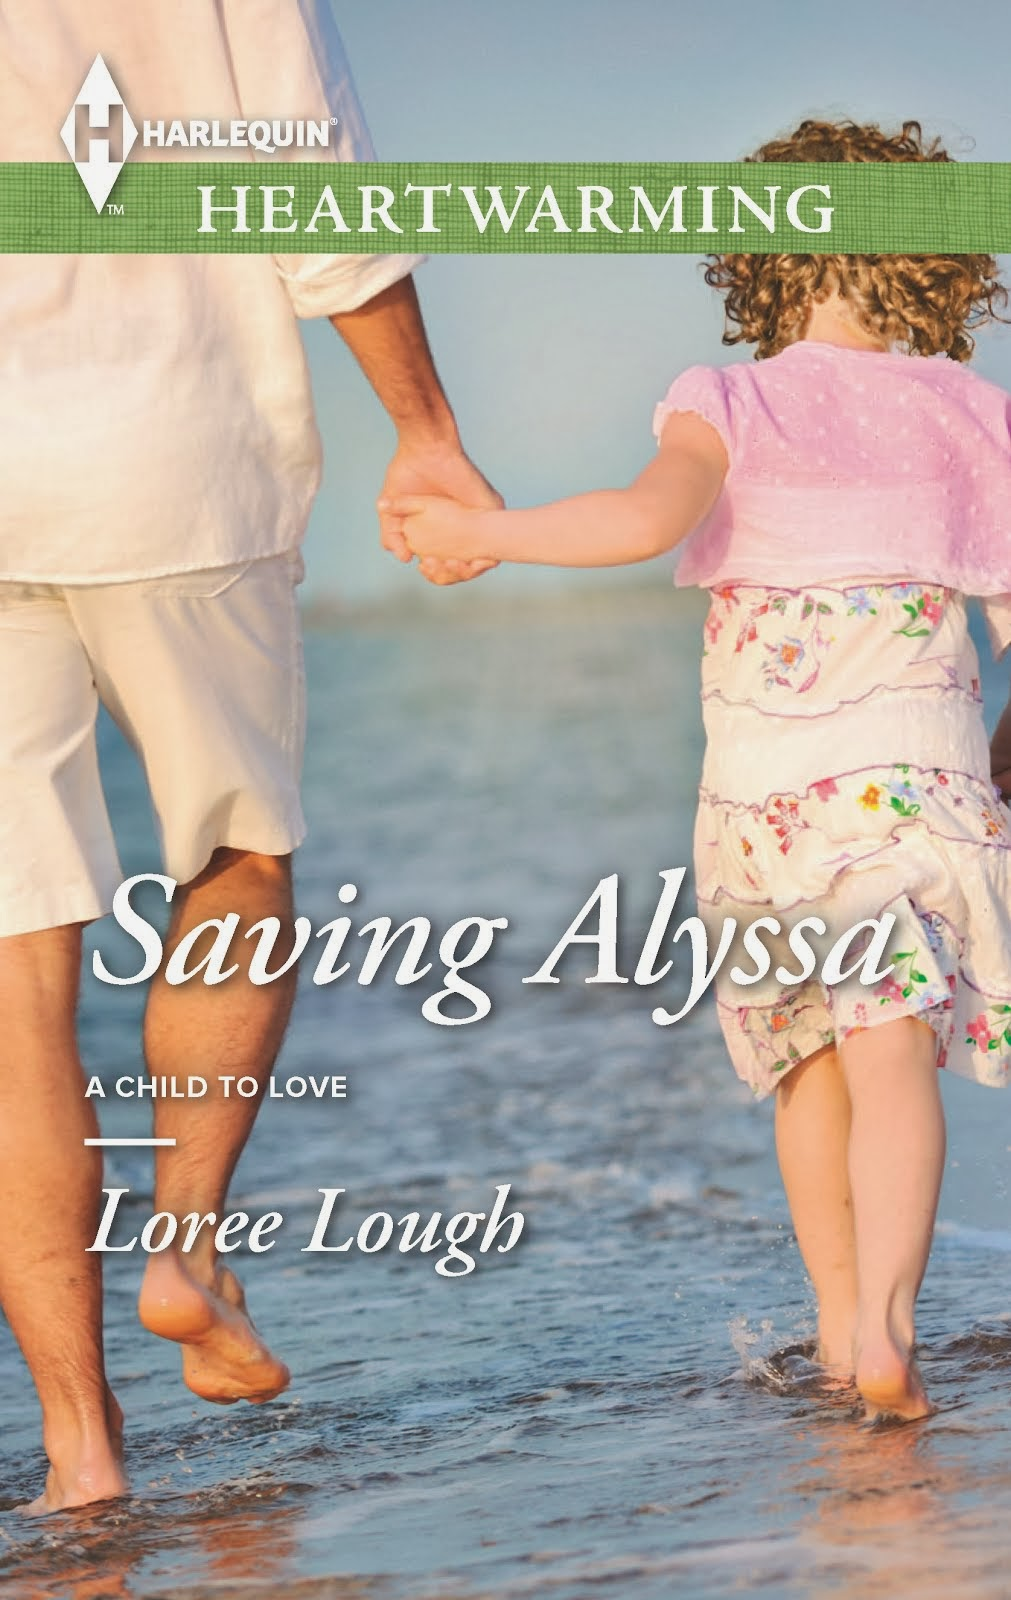 Saving Alyssa by Loree Lough